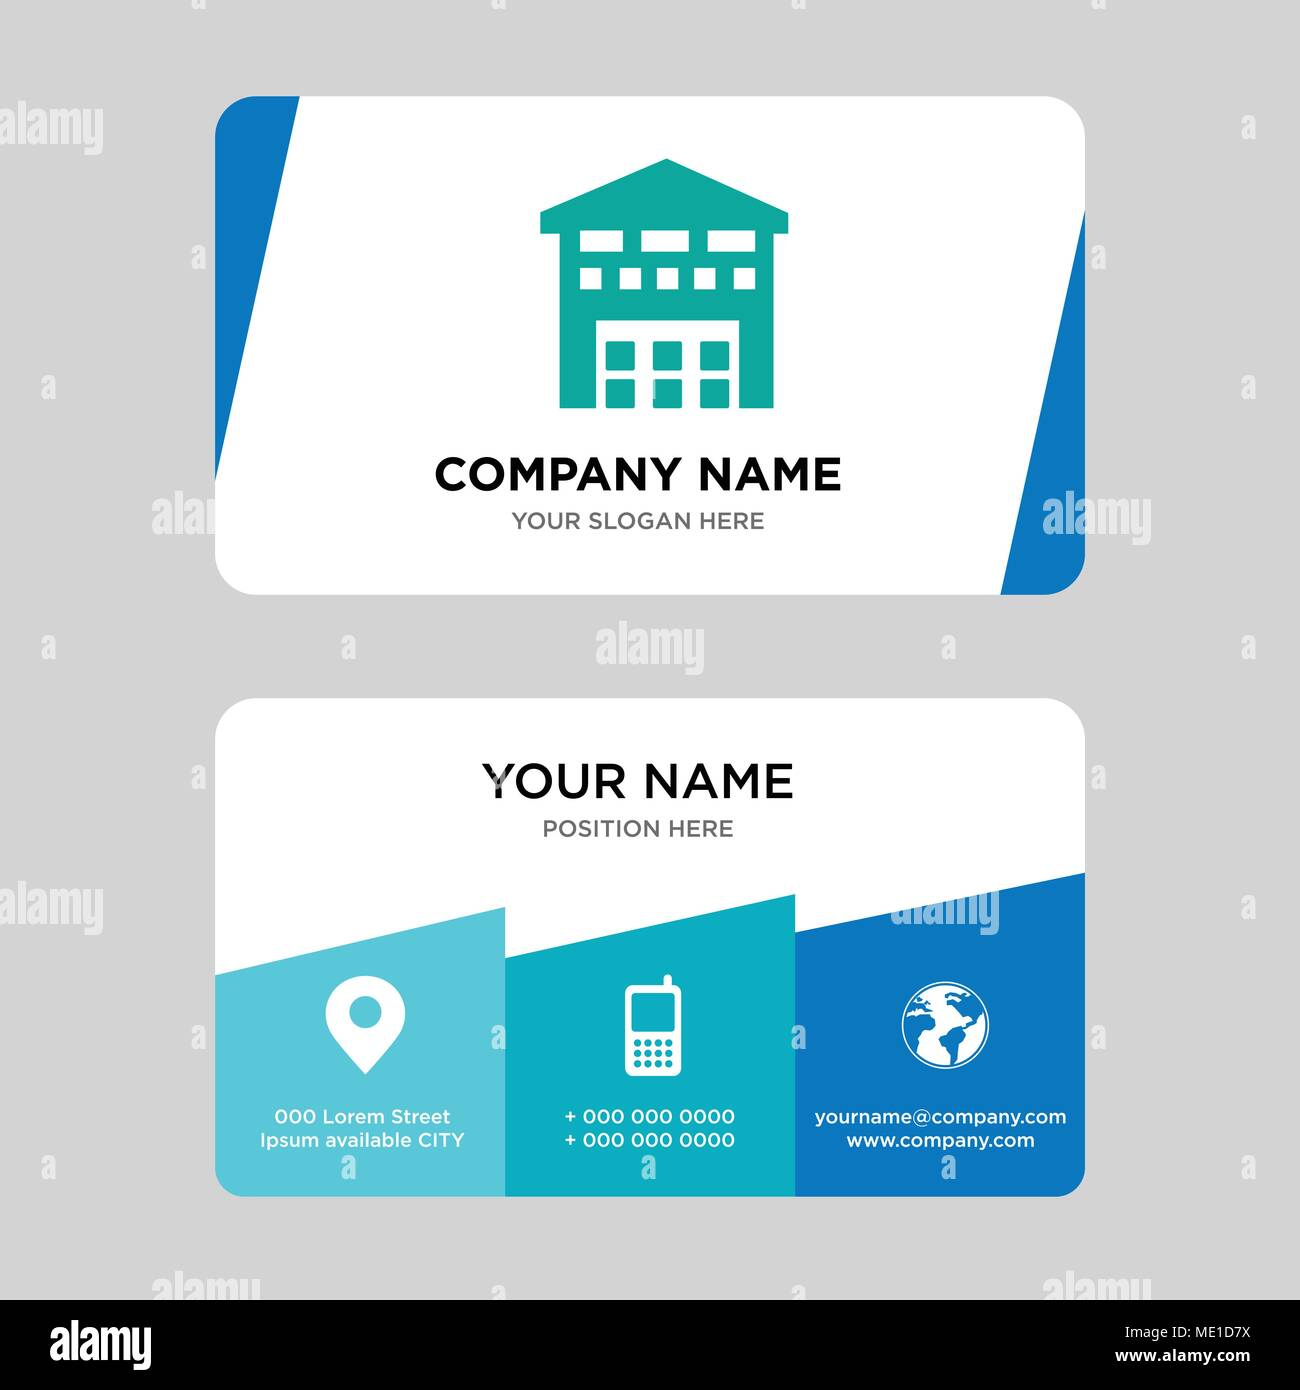 Garage Design Template Boxes Piles Sto Inside A Garage For Delivery Business Card Design